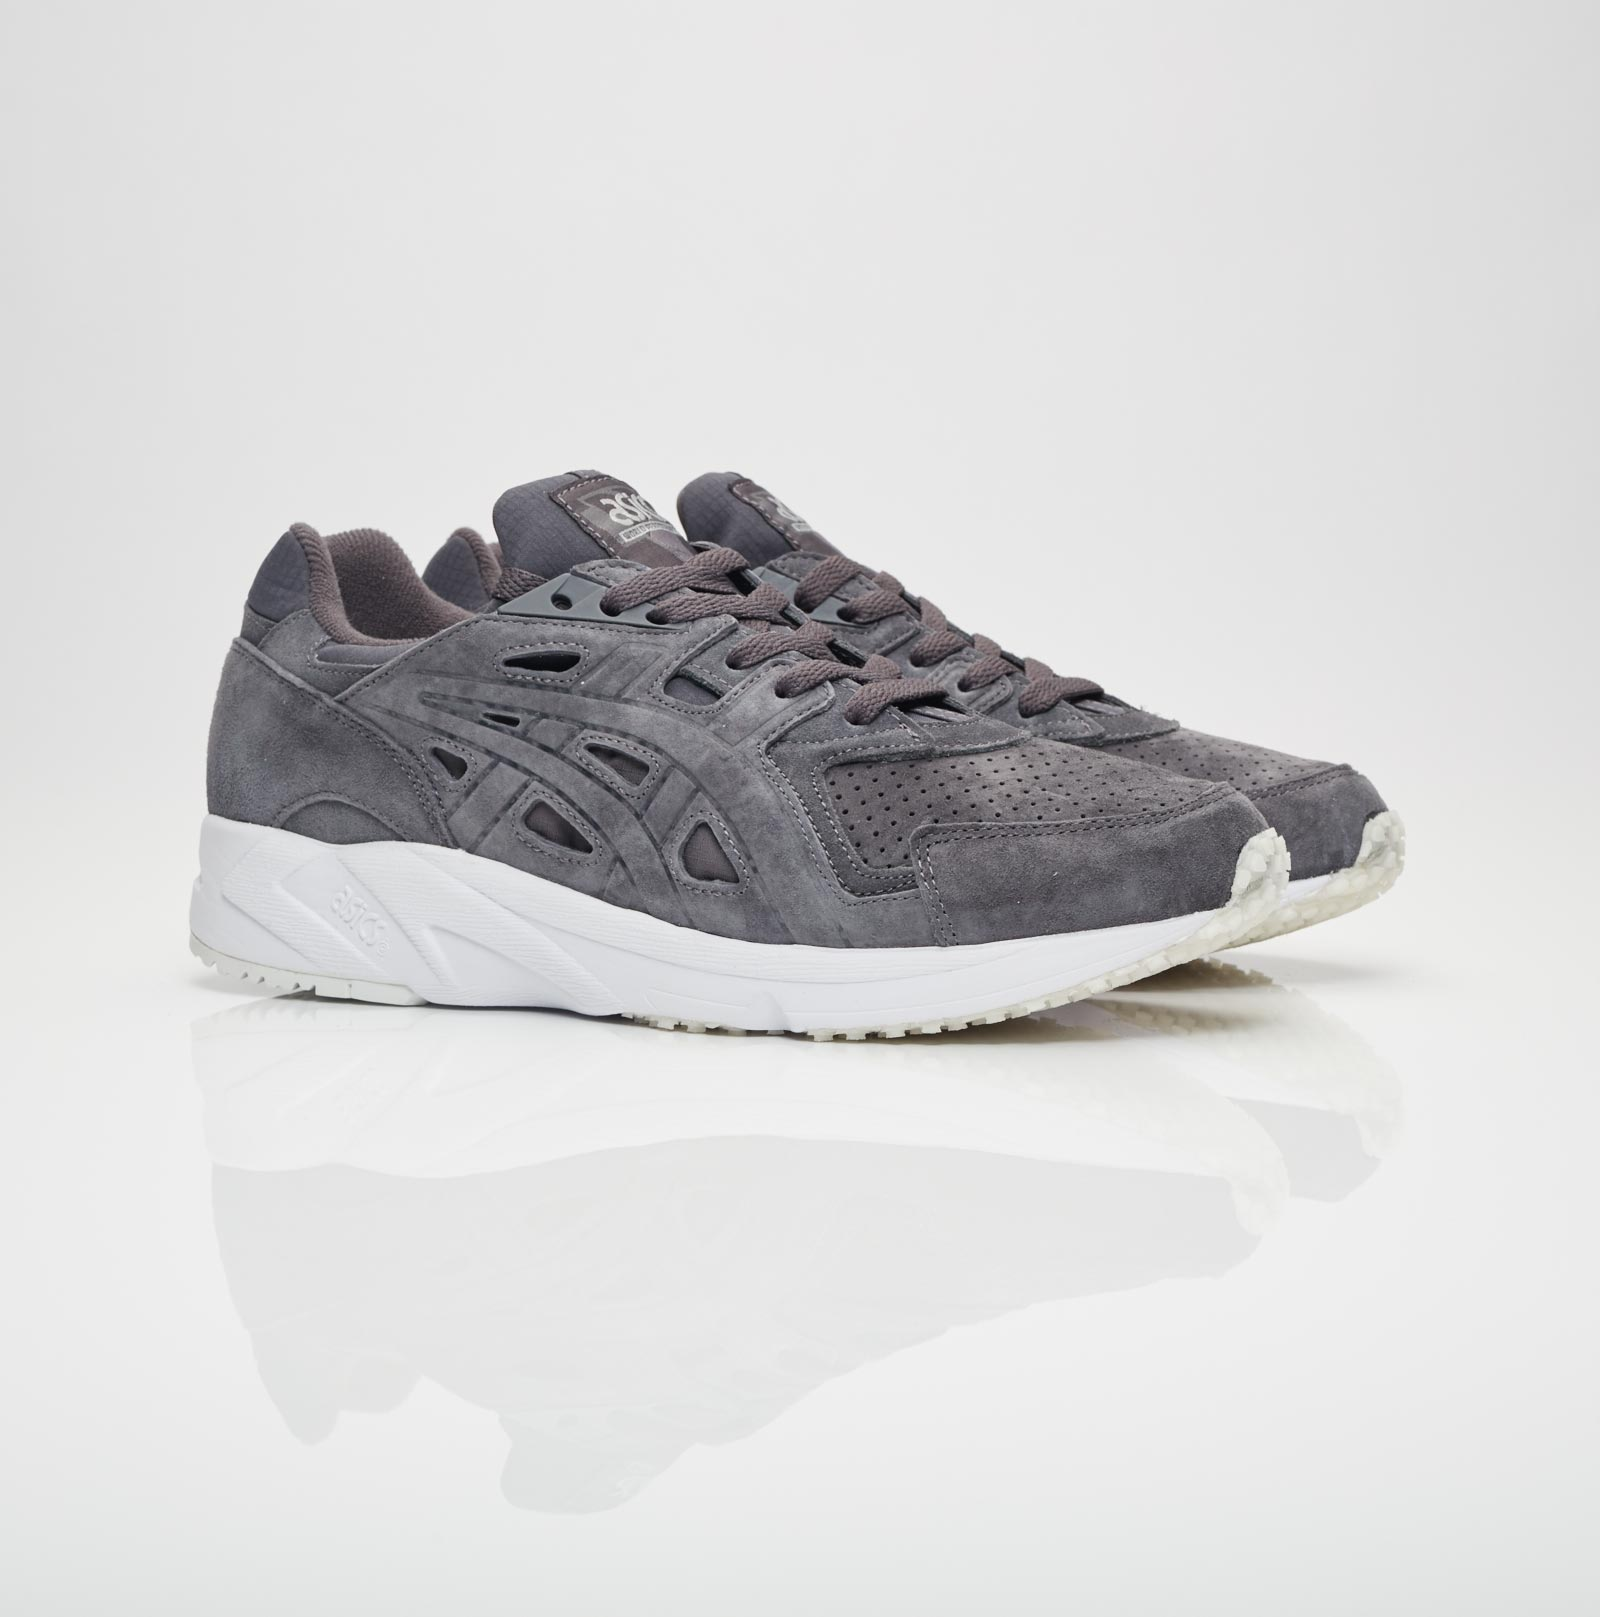 best sneakers 17859 527c7 ASICS Tiger Gel-Ds Trainer OG STR